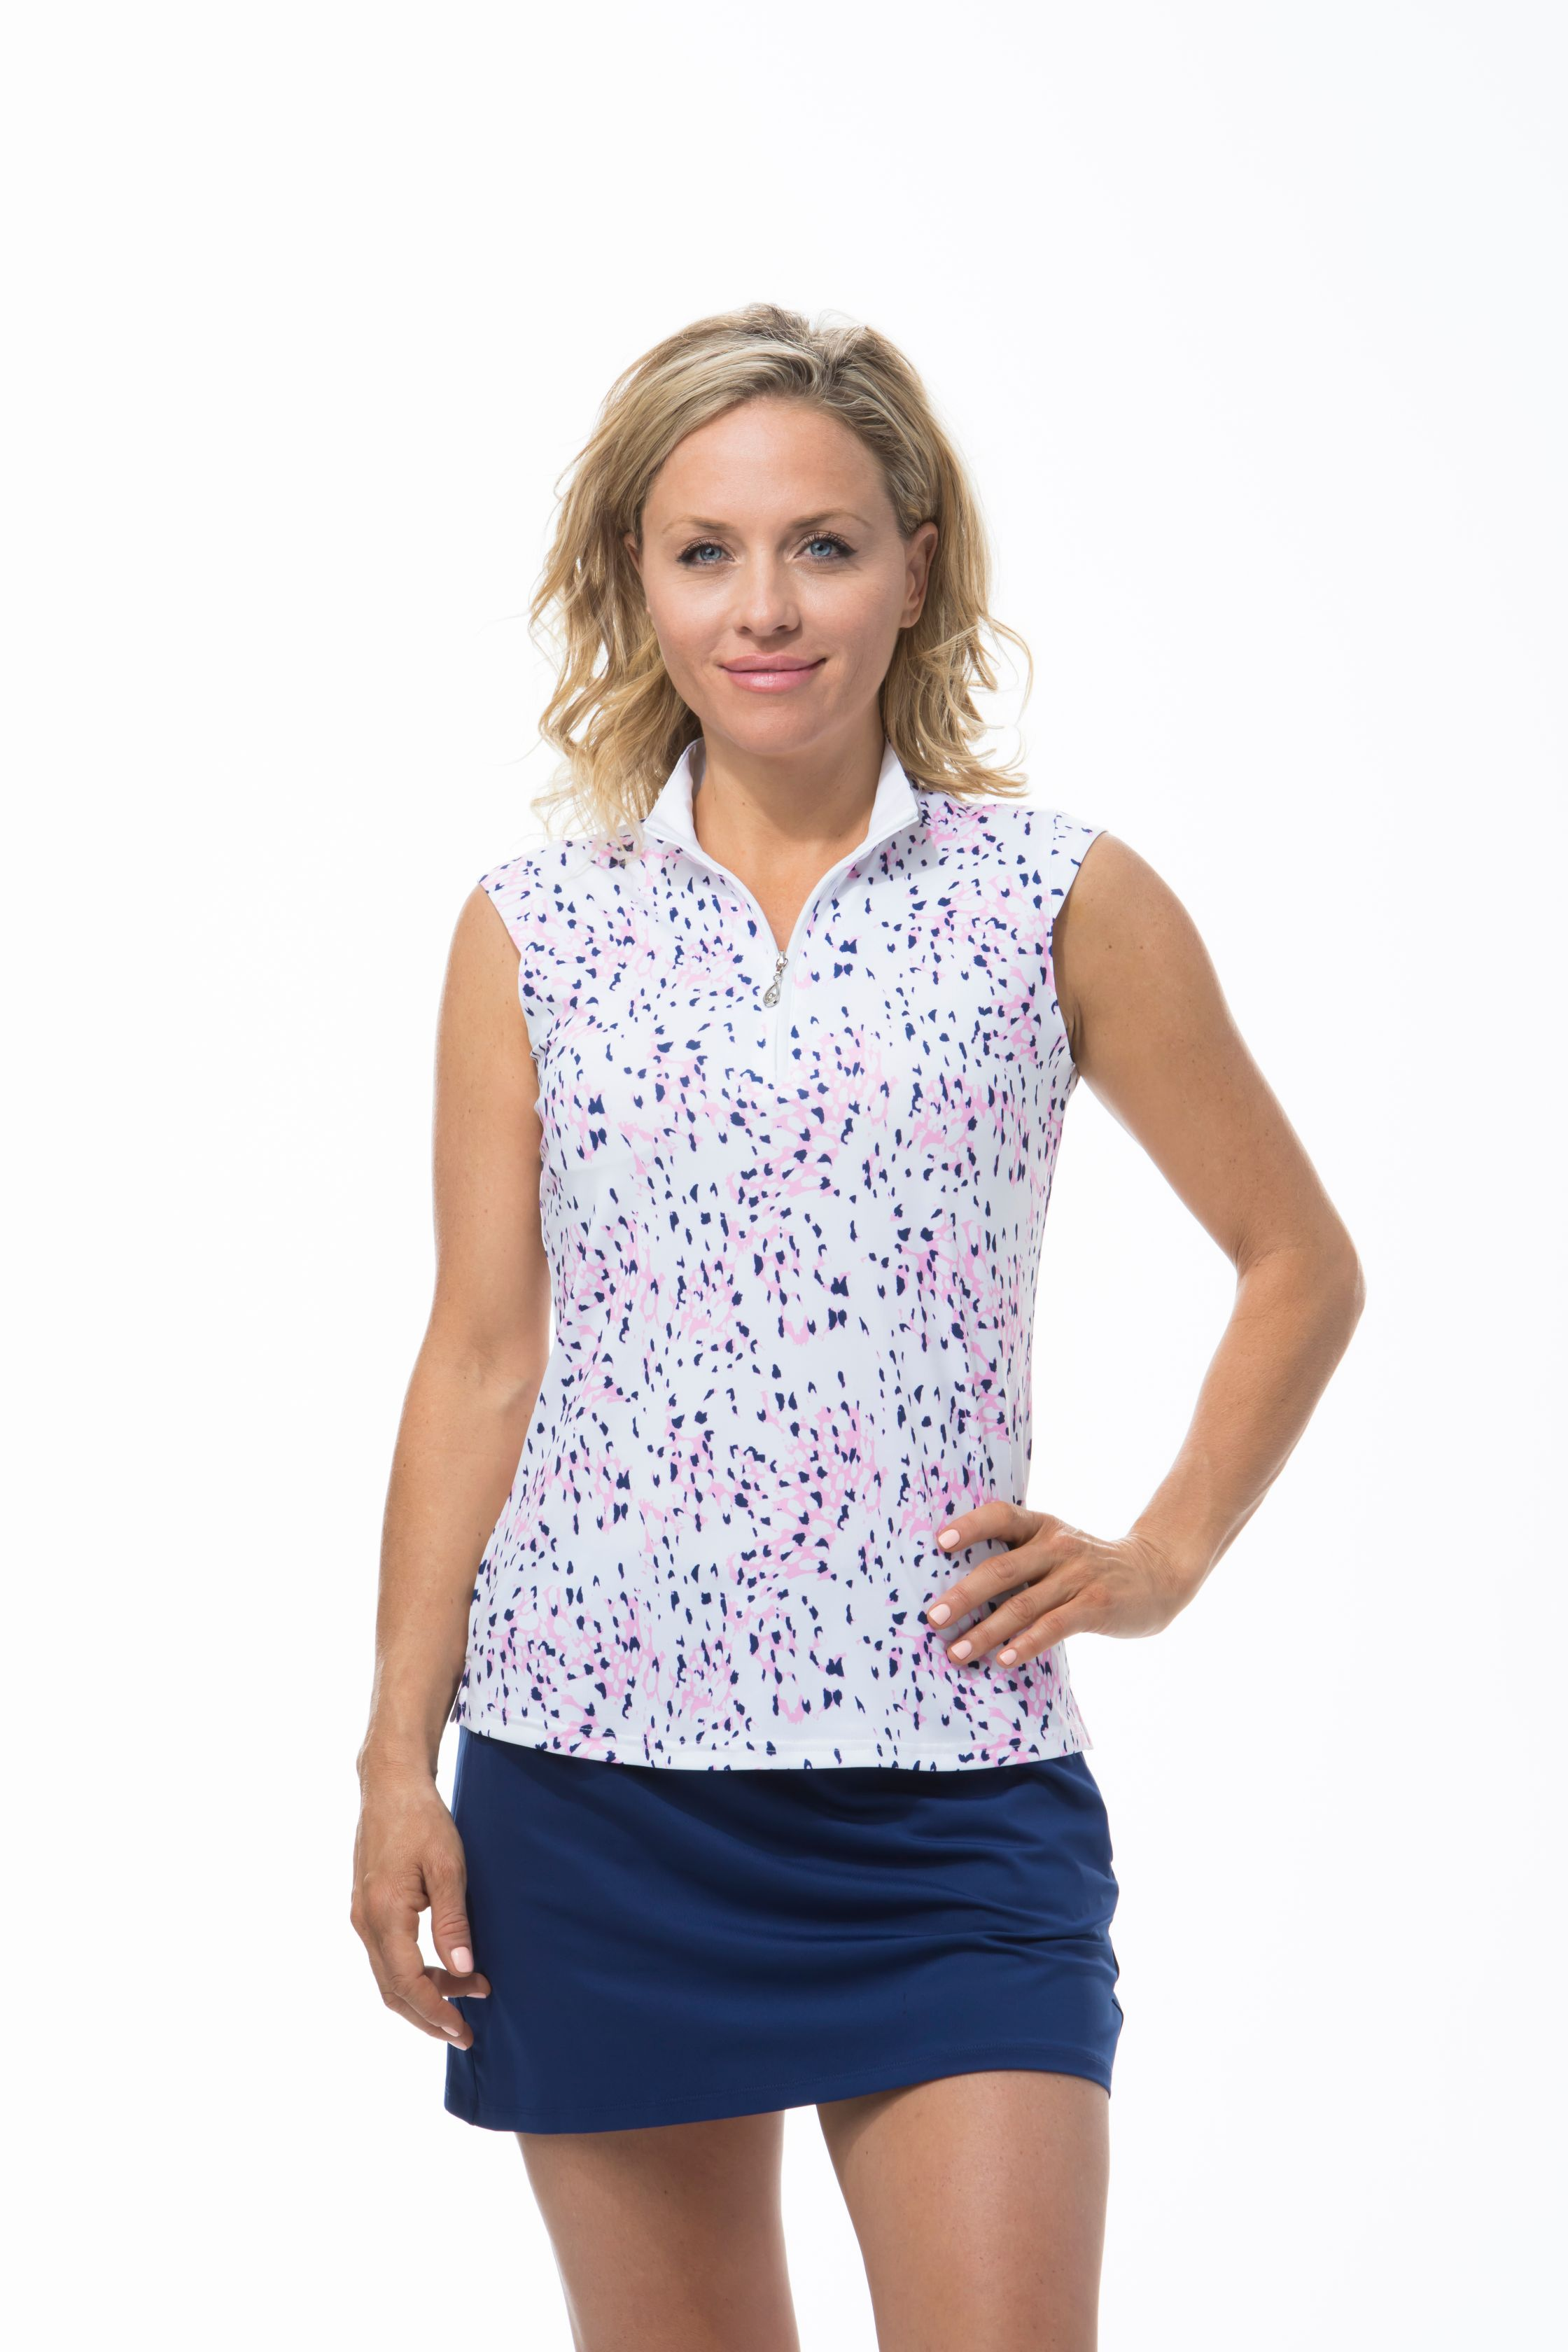 SANSOLEIL SOLCOOL SLEEVELESS MOCK. SNOW LEOPARD PINK. 900471